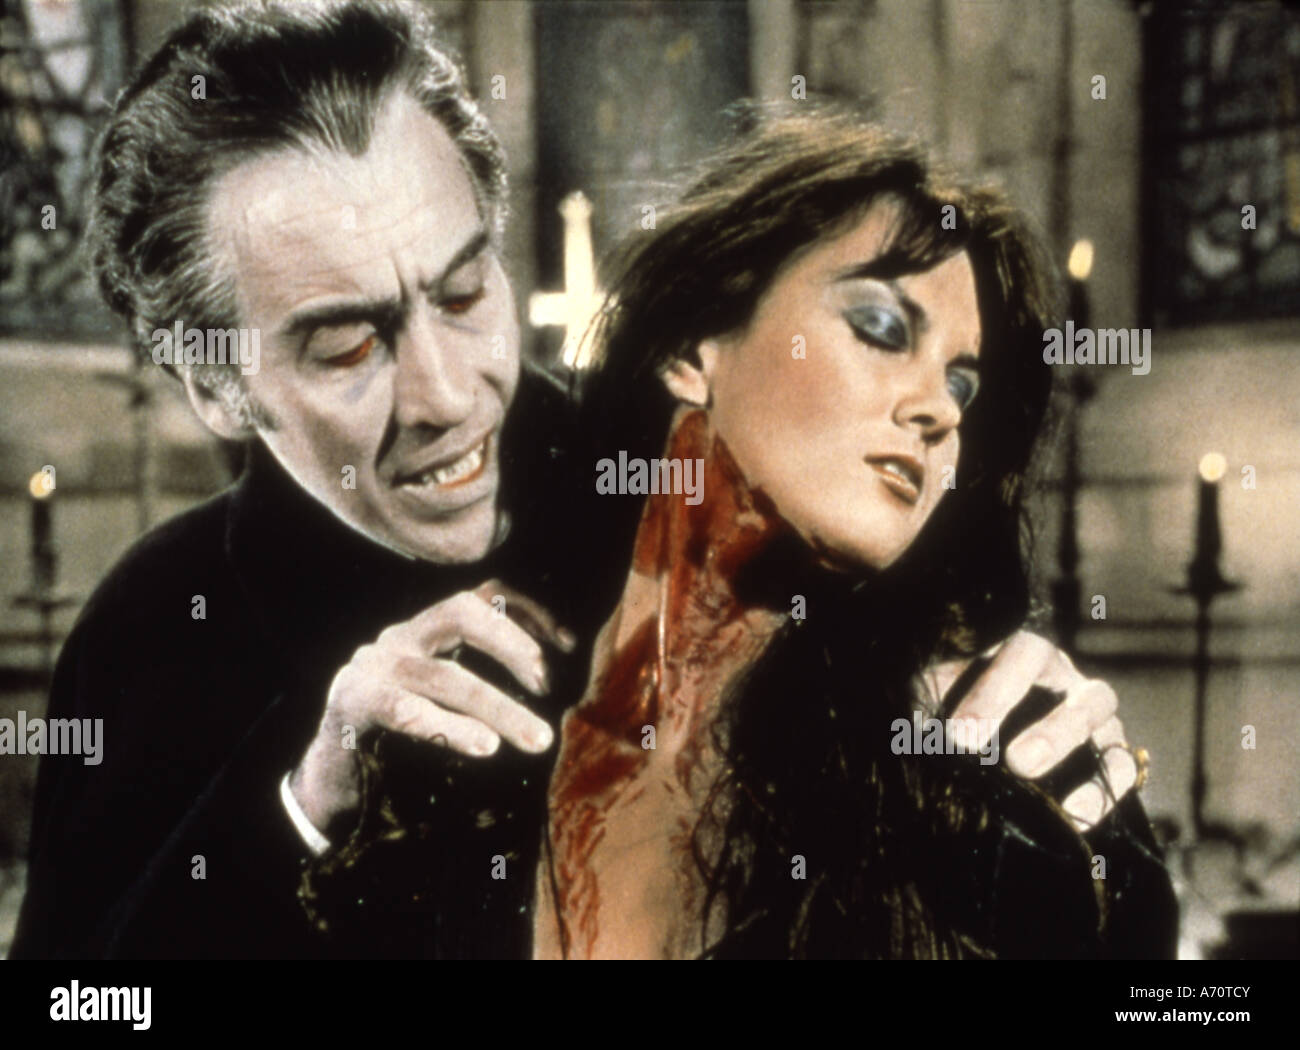 DRACULA AD 1972  -Warner 1972 film with Christopher Lee and Caroline Munro - Stock Image